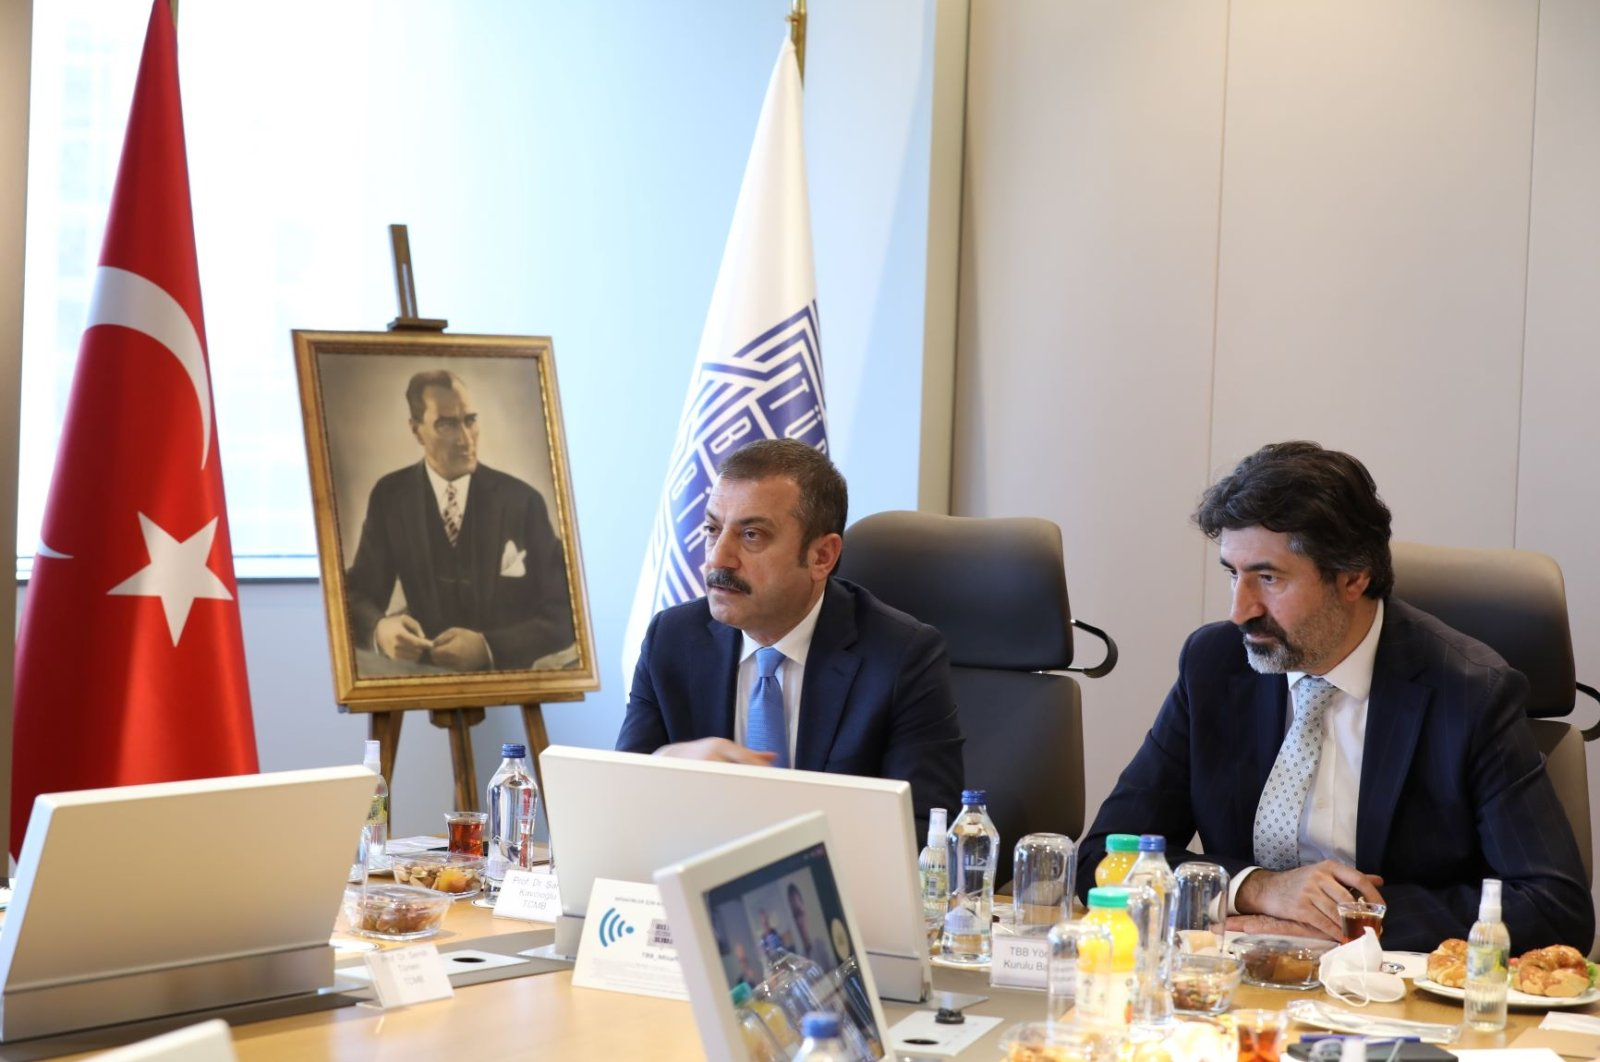 Central Bank of the Republic of Turkey (CBRT) Governor Şahap Kavcıoğlu (L) listens to senior bankers during a meeting in Istanbul, Turkey, June 22, 2021. (TBB via AA)